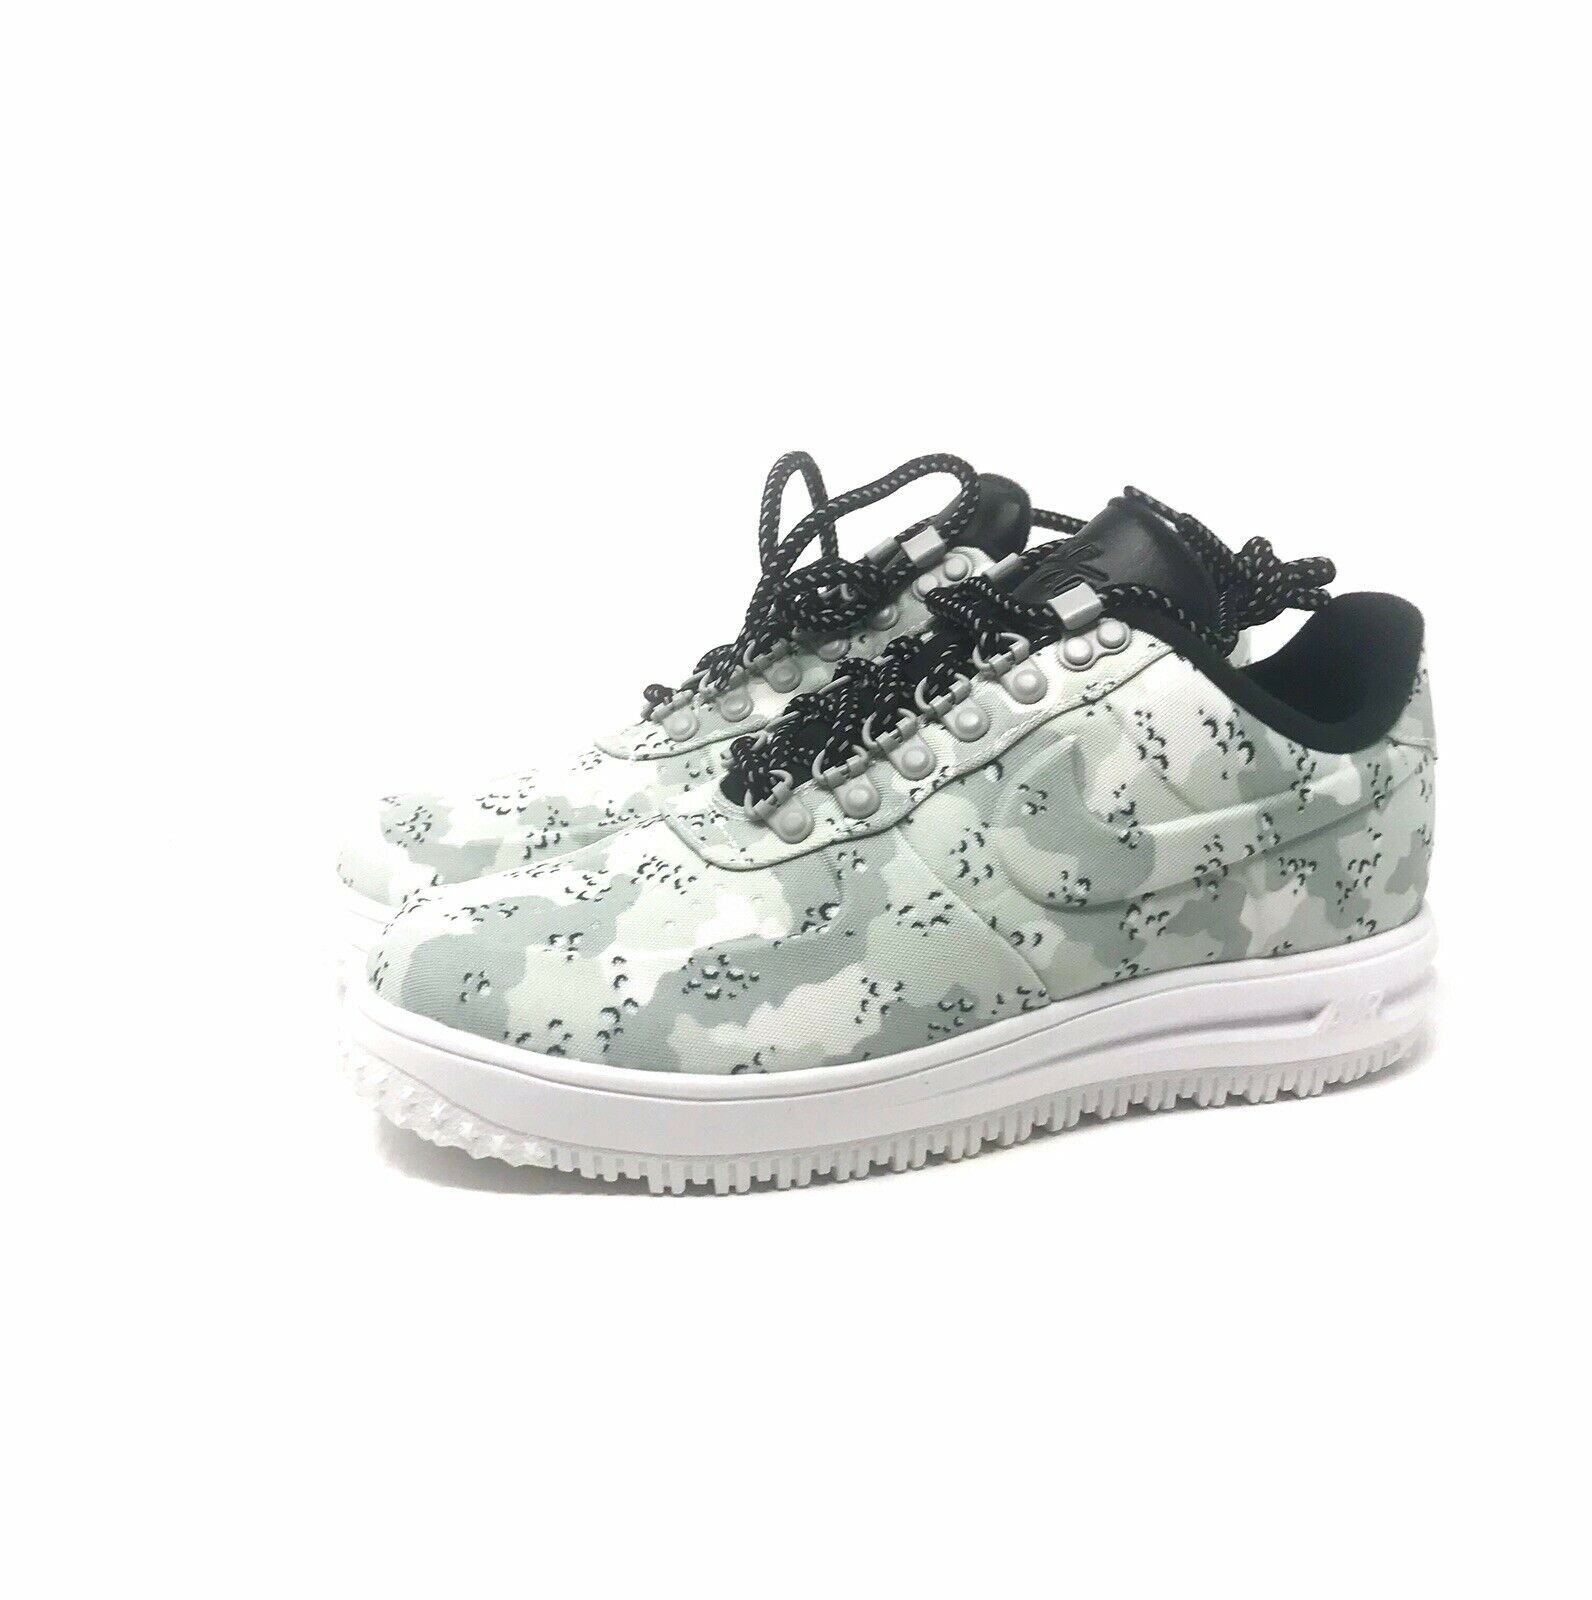 Nike lF1 Duckboot Low Air Force 1 Sneakers AA1125 003 Size 10.  Free Shipping